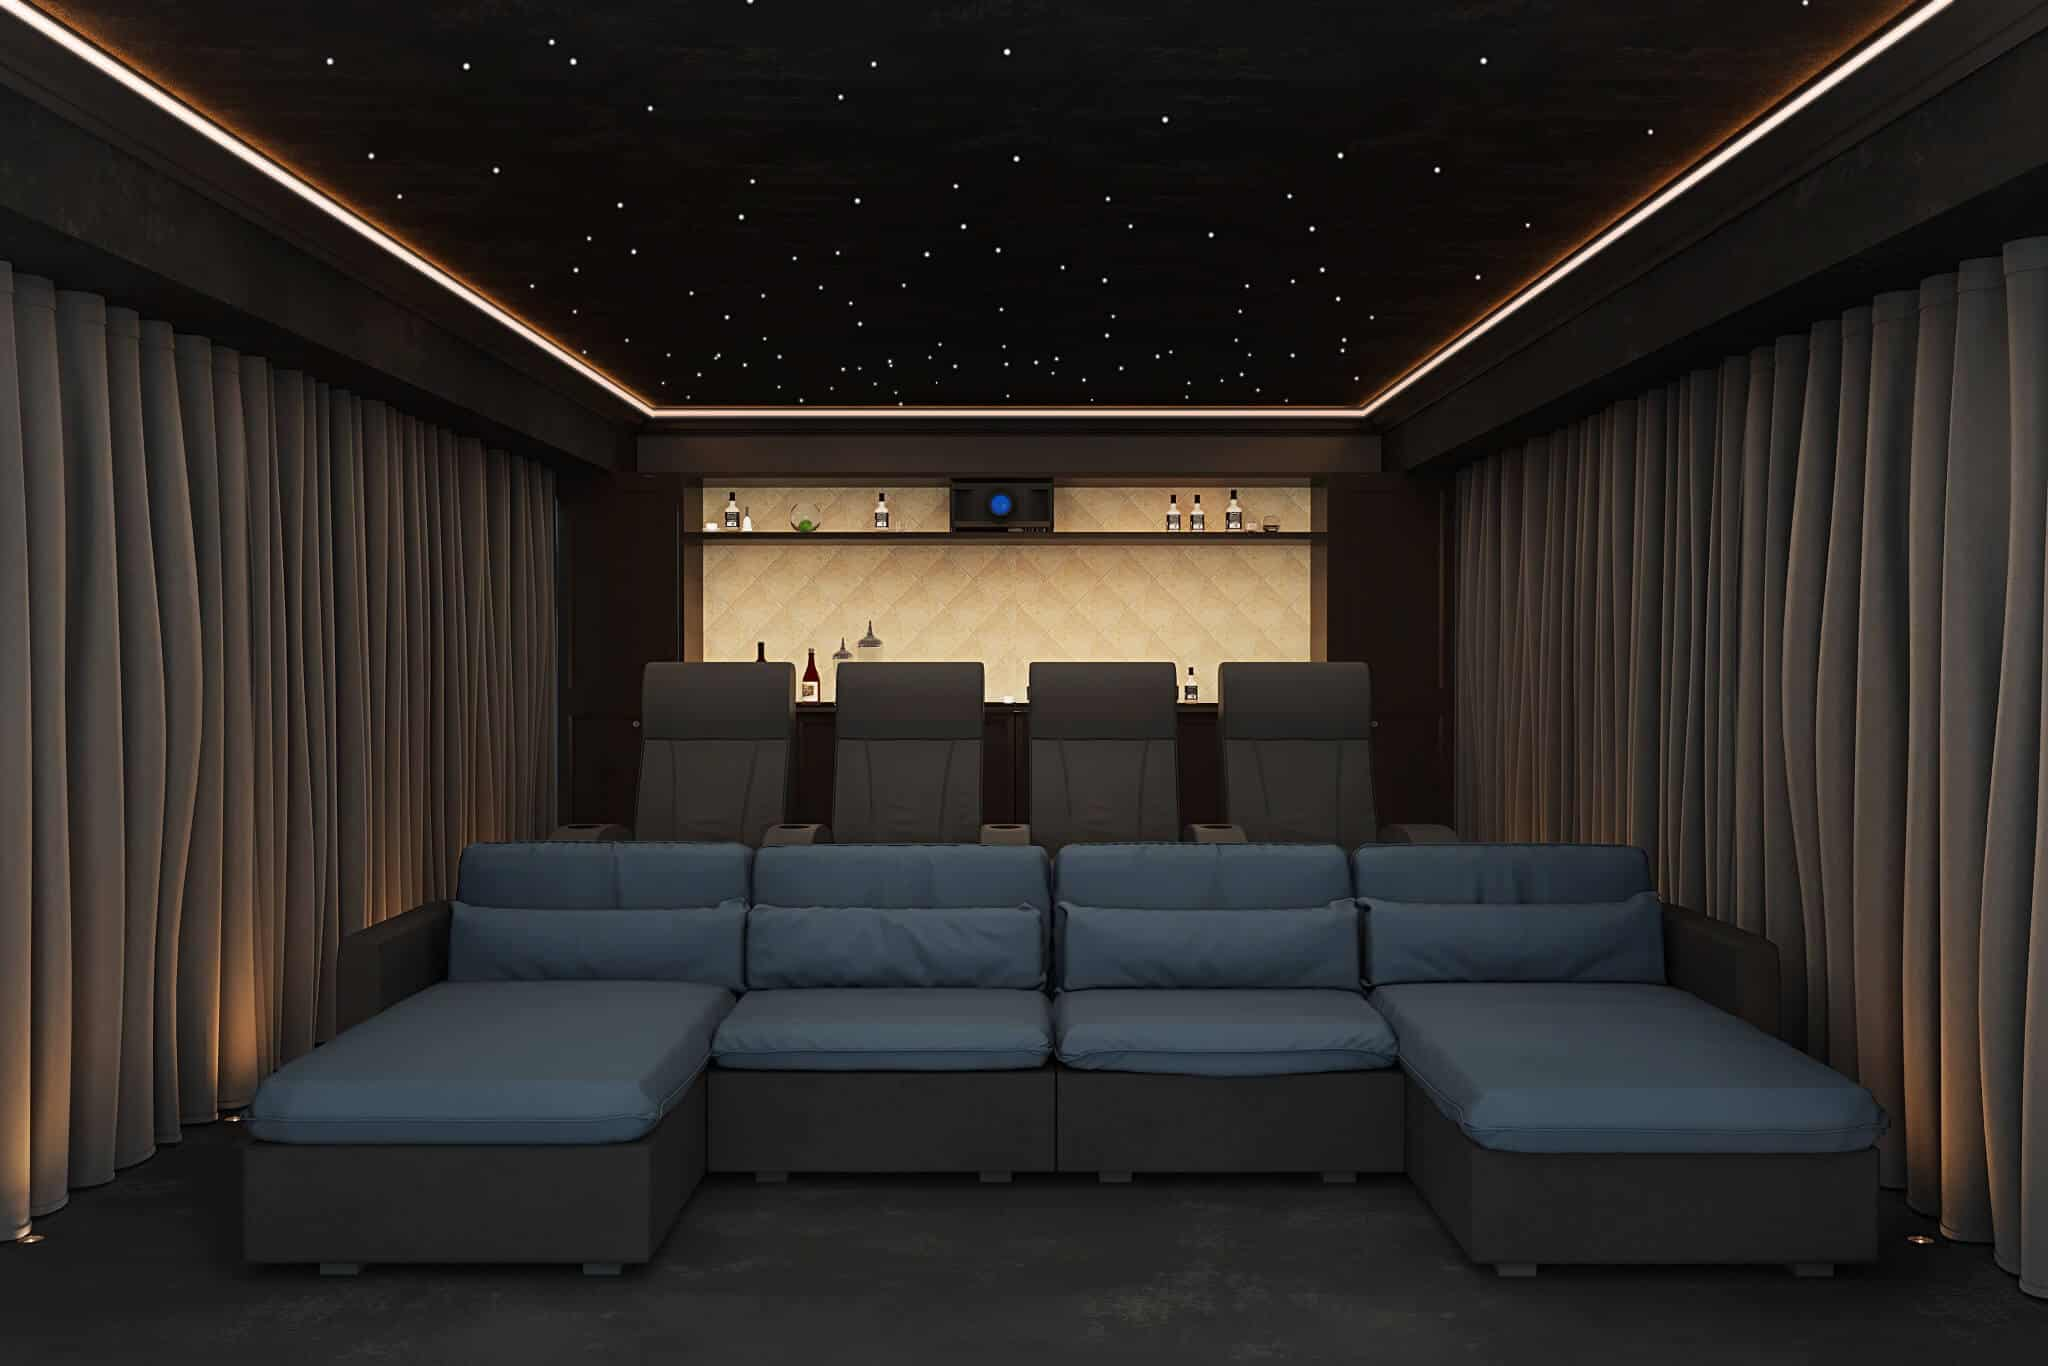 Home Cinema Seating - Day Bed arrangement on the Front Row with traditional seating behind